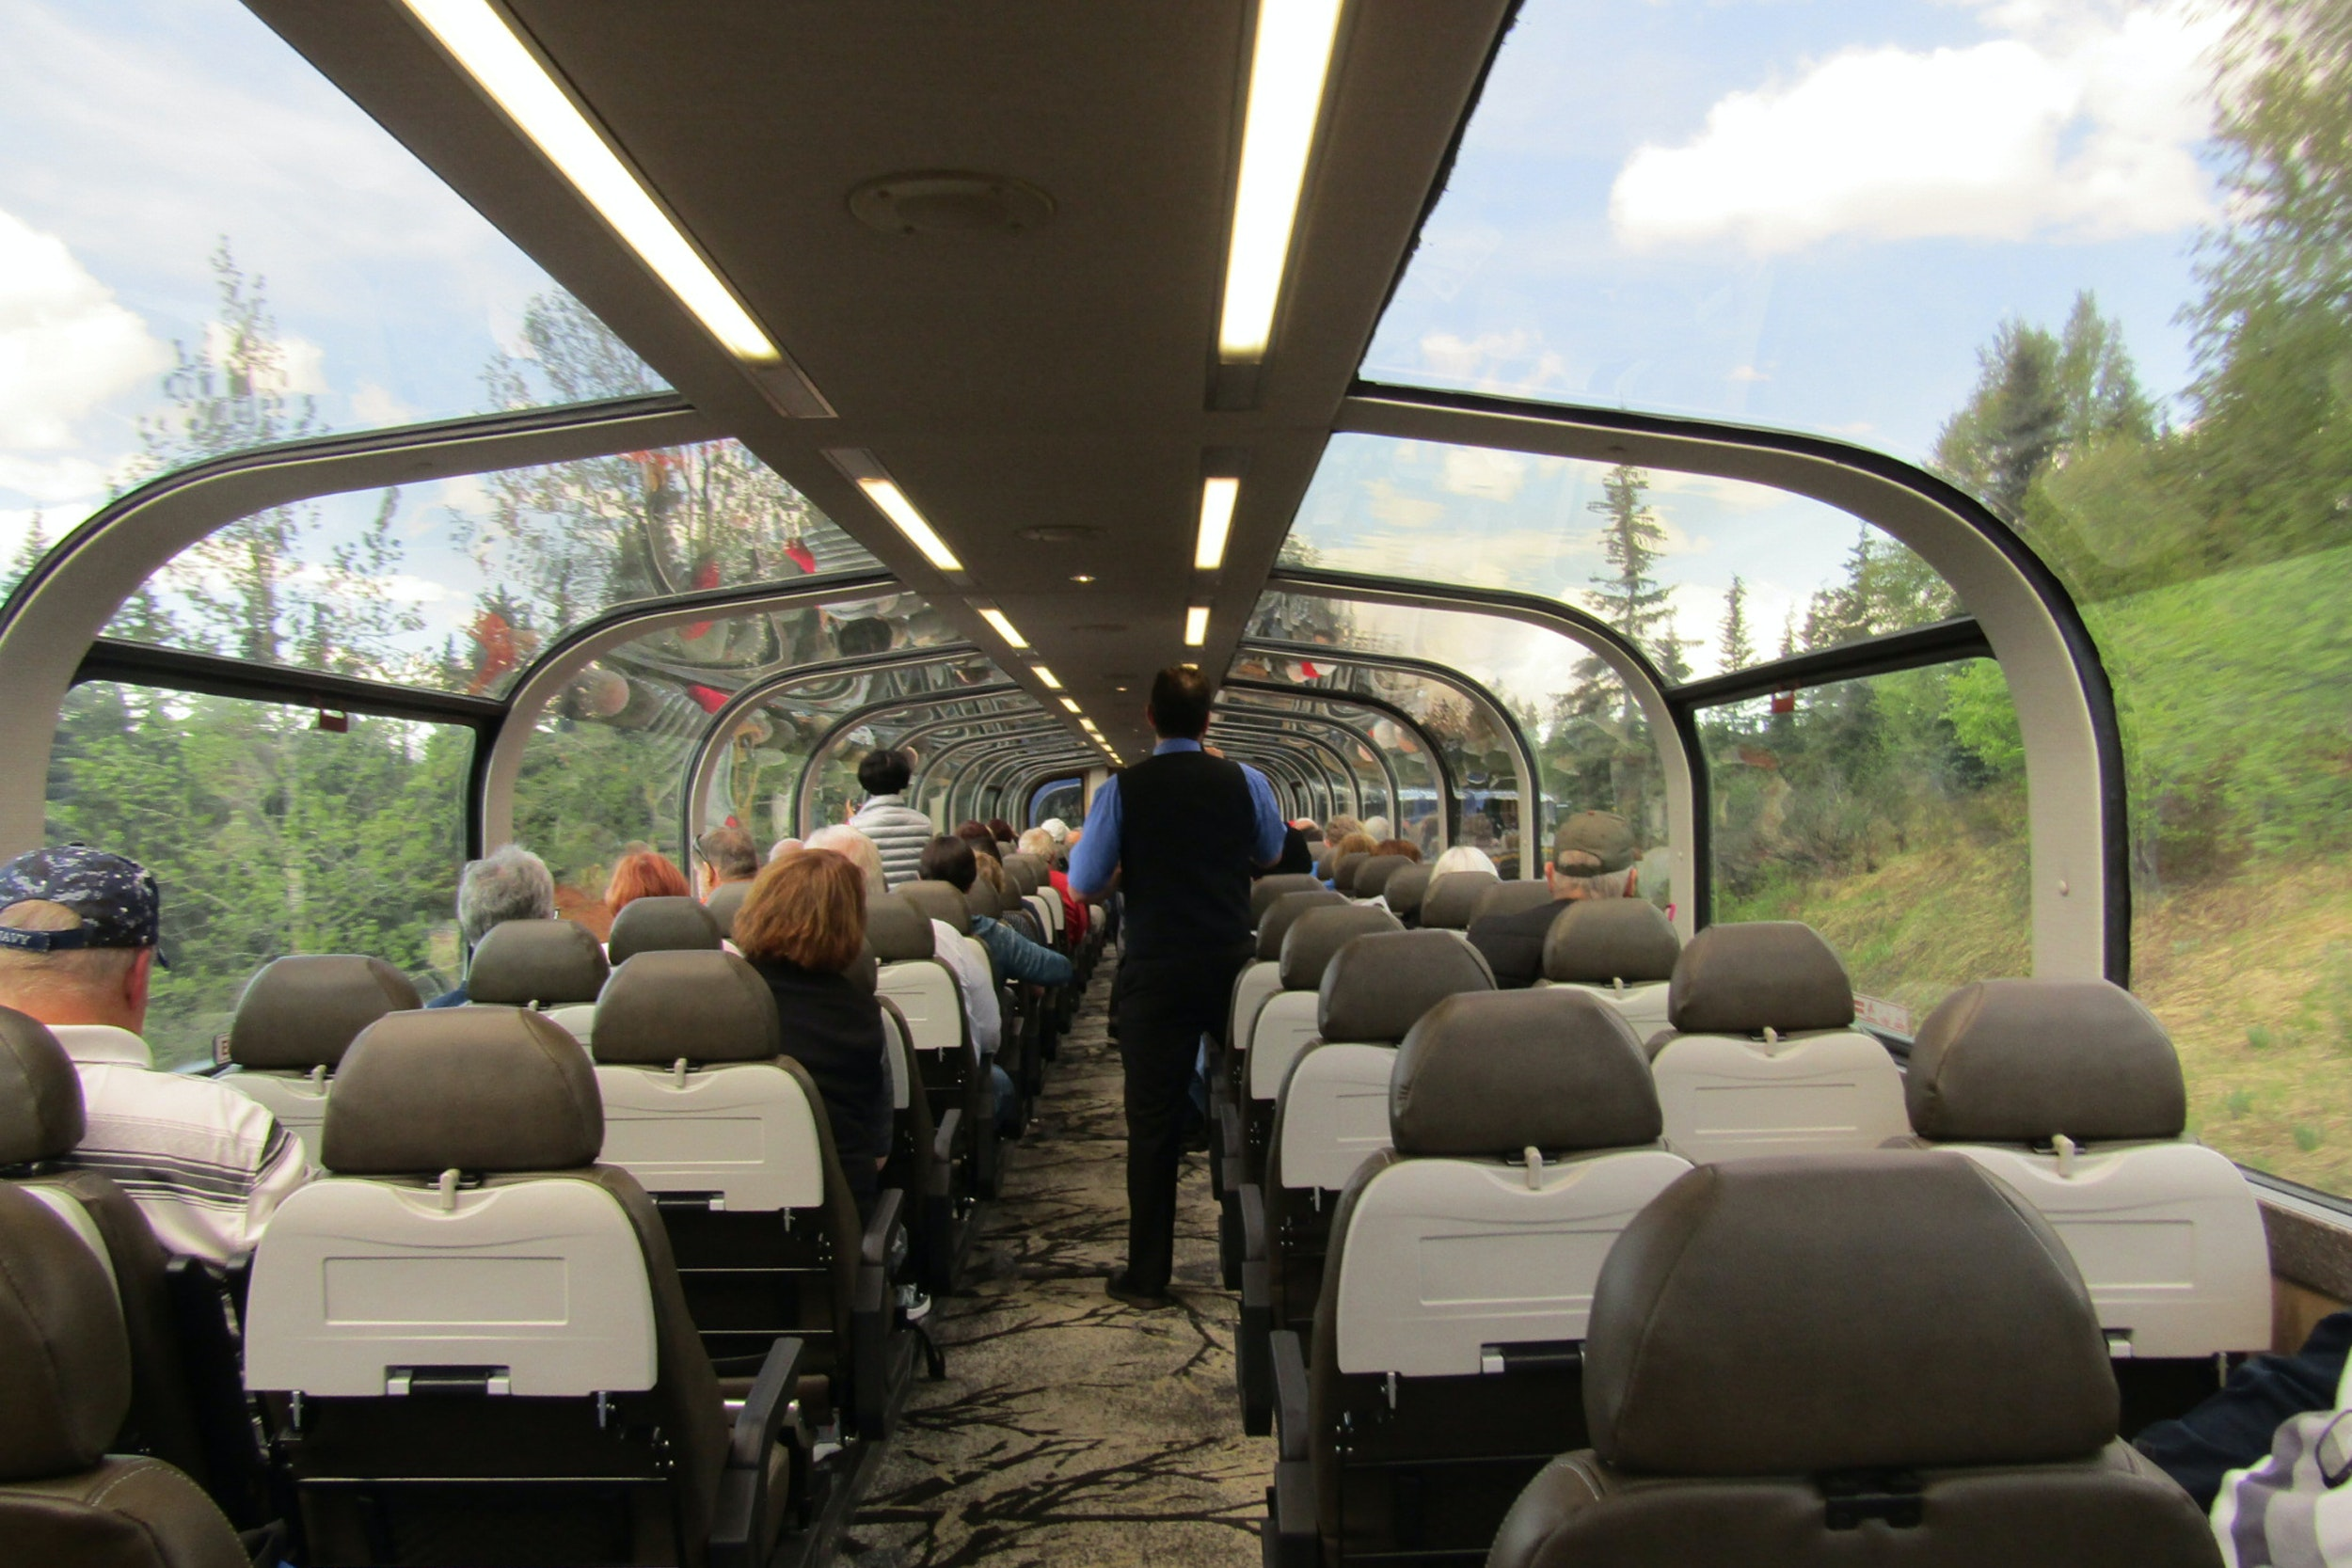 Guests take in panoramic views of the Alaskan wilderness in the glass-enclosed dome car.